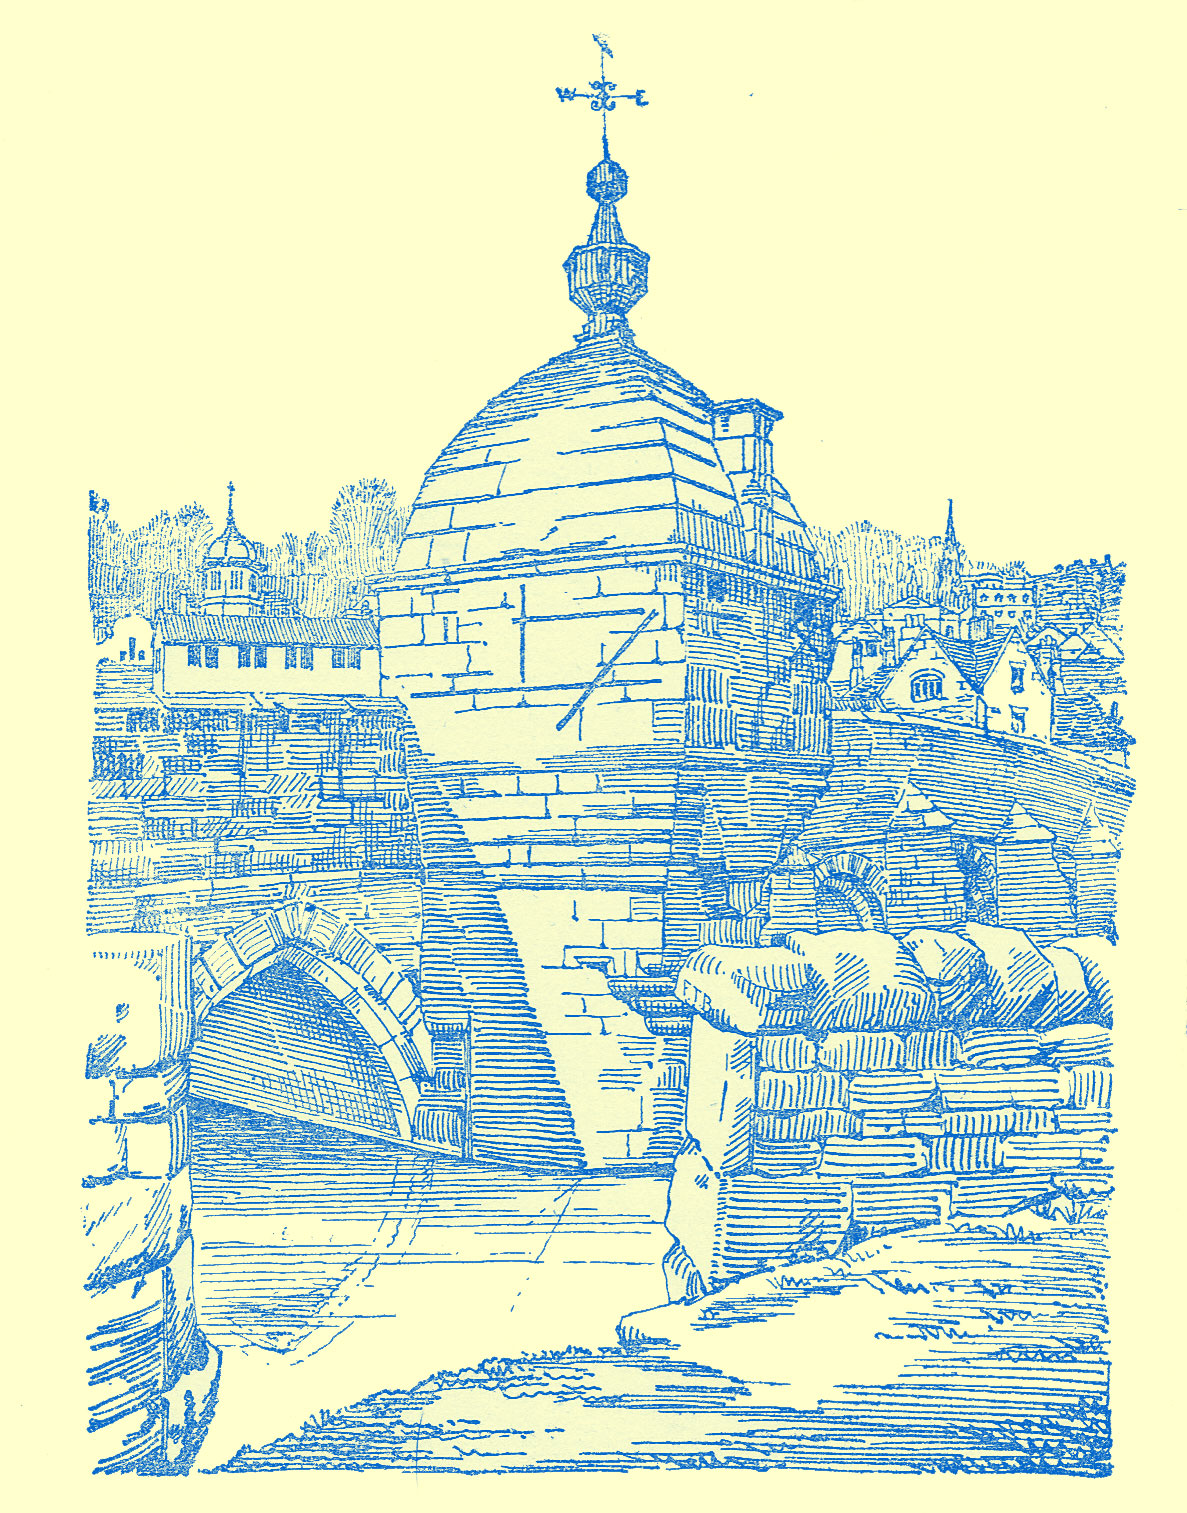 Engraving of a stone bridge, with a small domed structure built on it, topped with a weathervane.